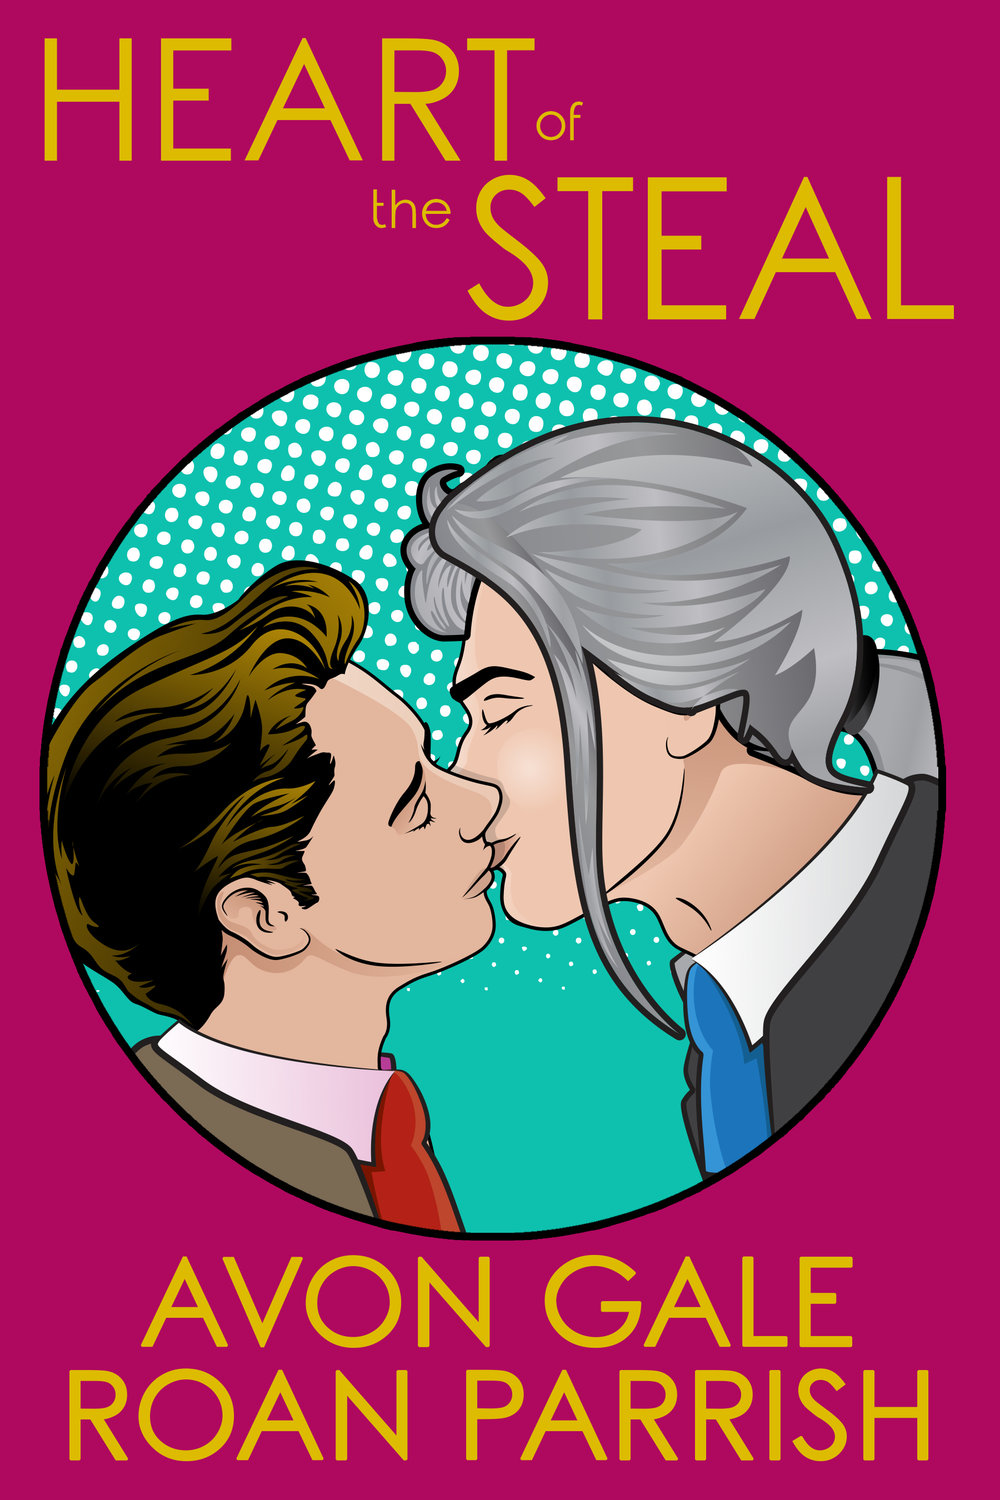 Heart of the Steal (Heart of the Steal #1) Roan Parrish and Avon Gale